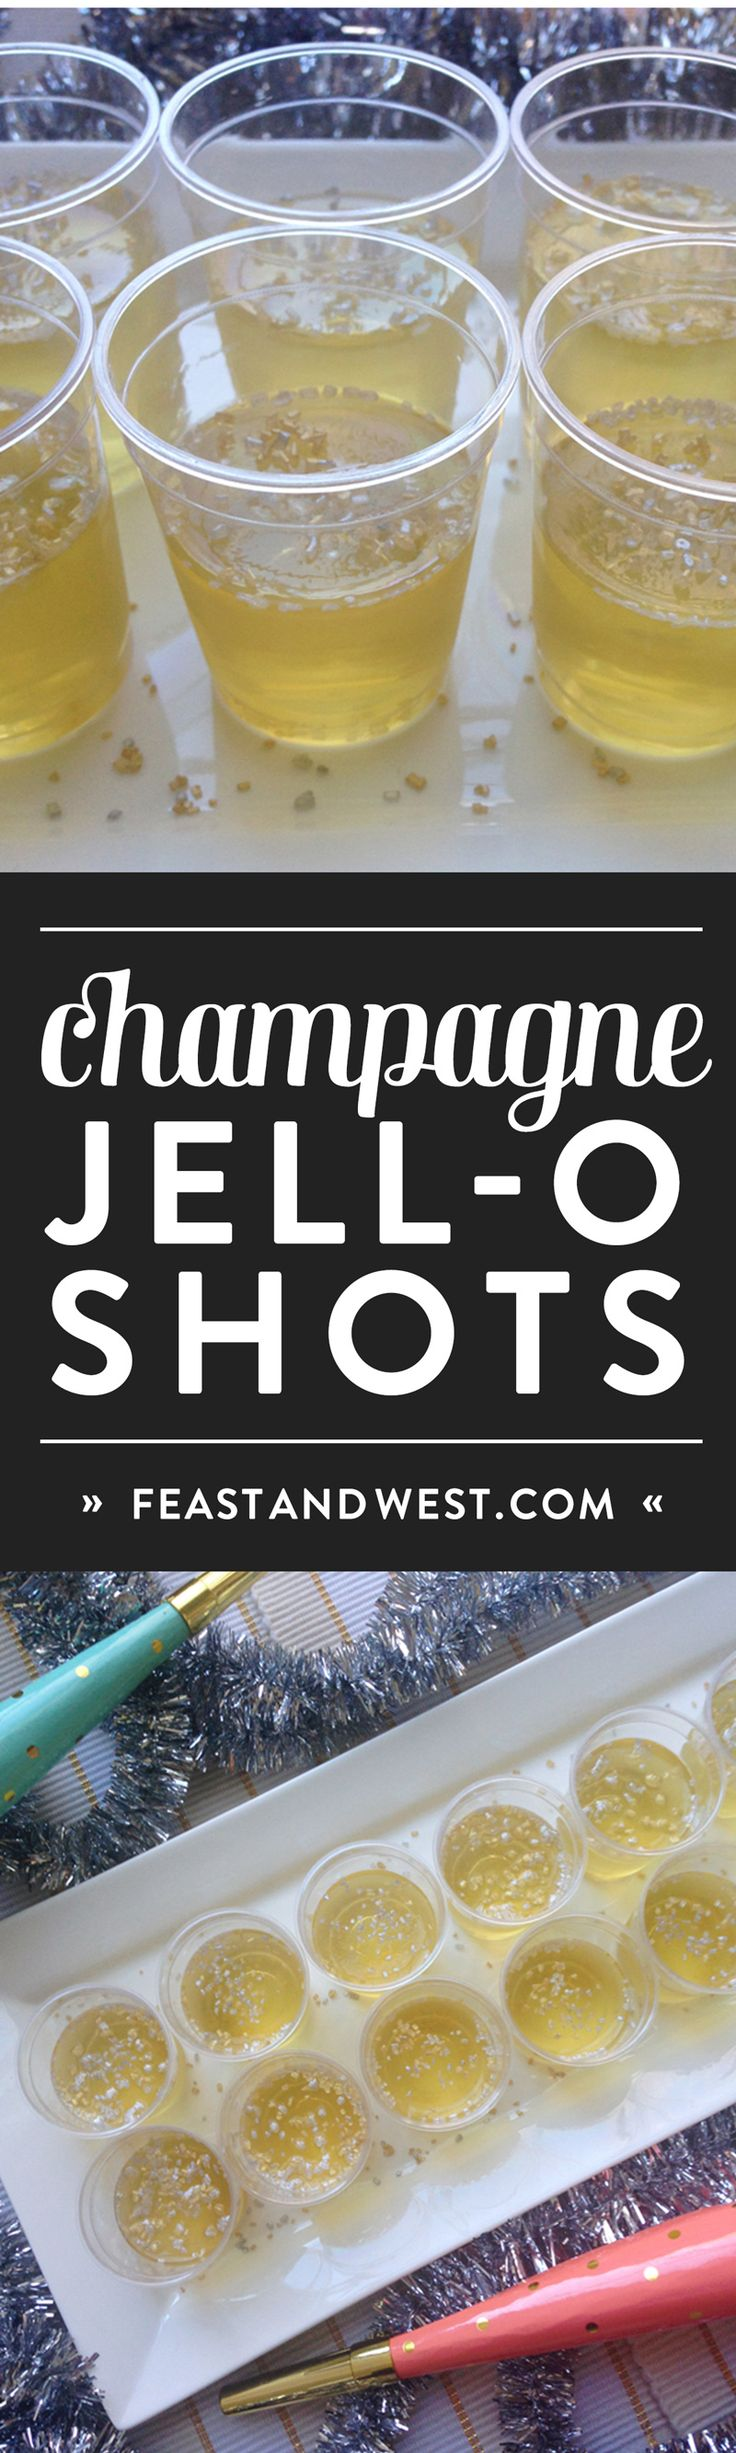 Champagne Jell-O Shots are the best way to celebrate the holidays! Use real sparkling wine, vodka and gelatin to create this party treat! (via feastandwest.com)